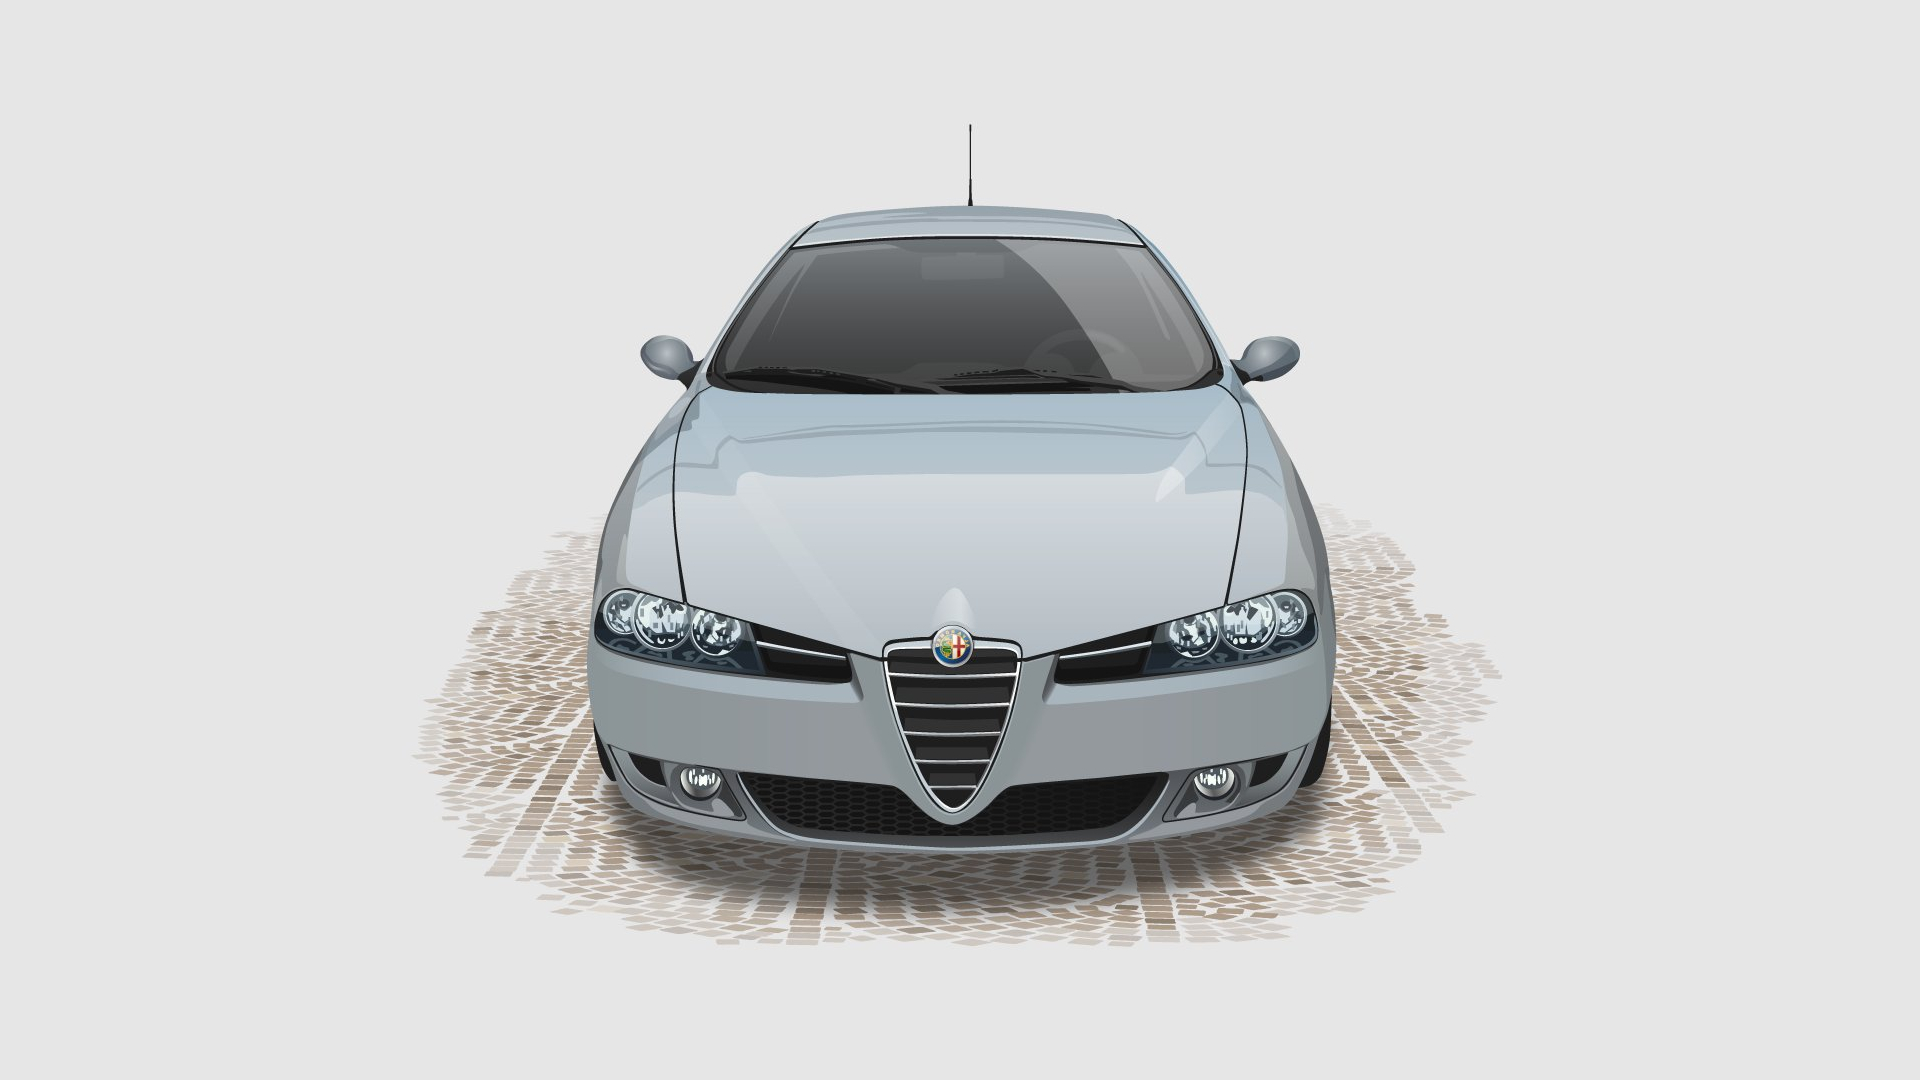 light Alfa Romeo Car HD Wallpaper